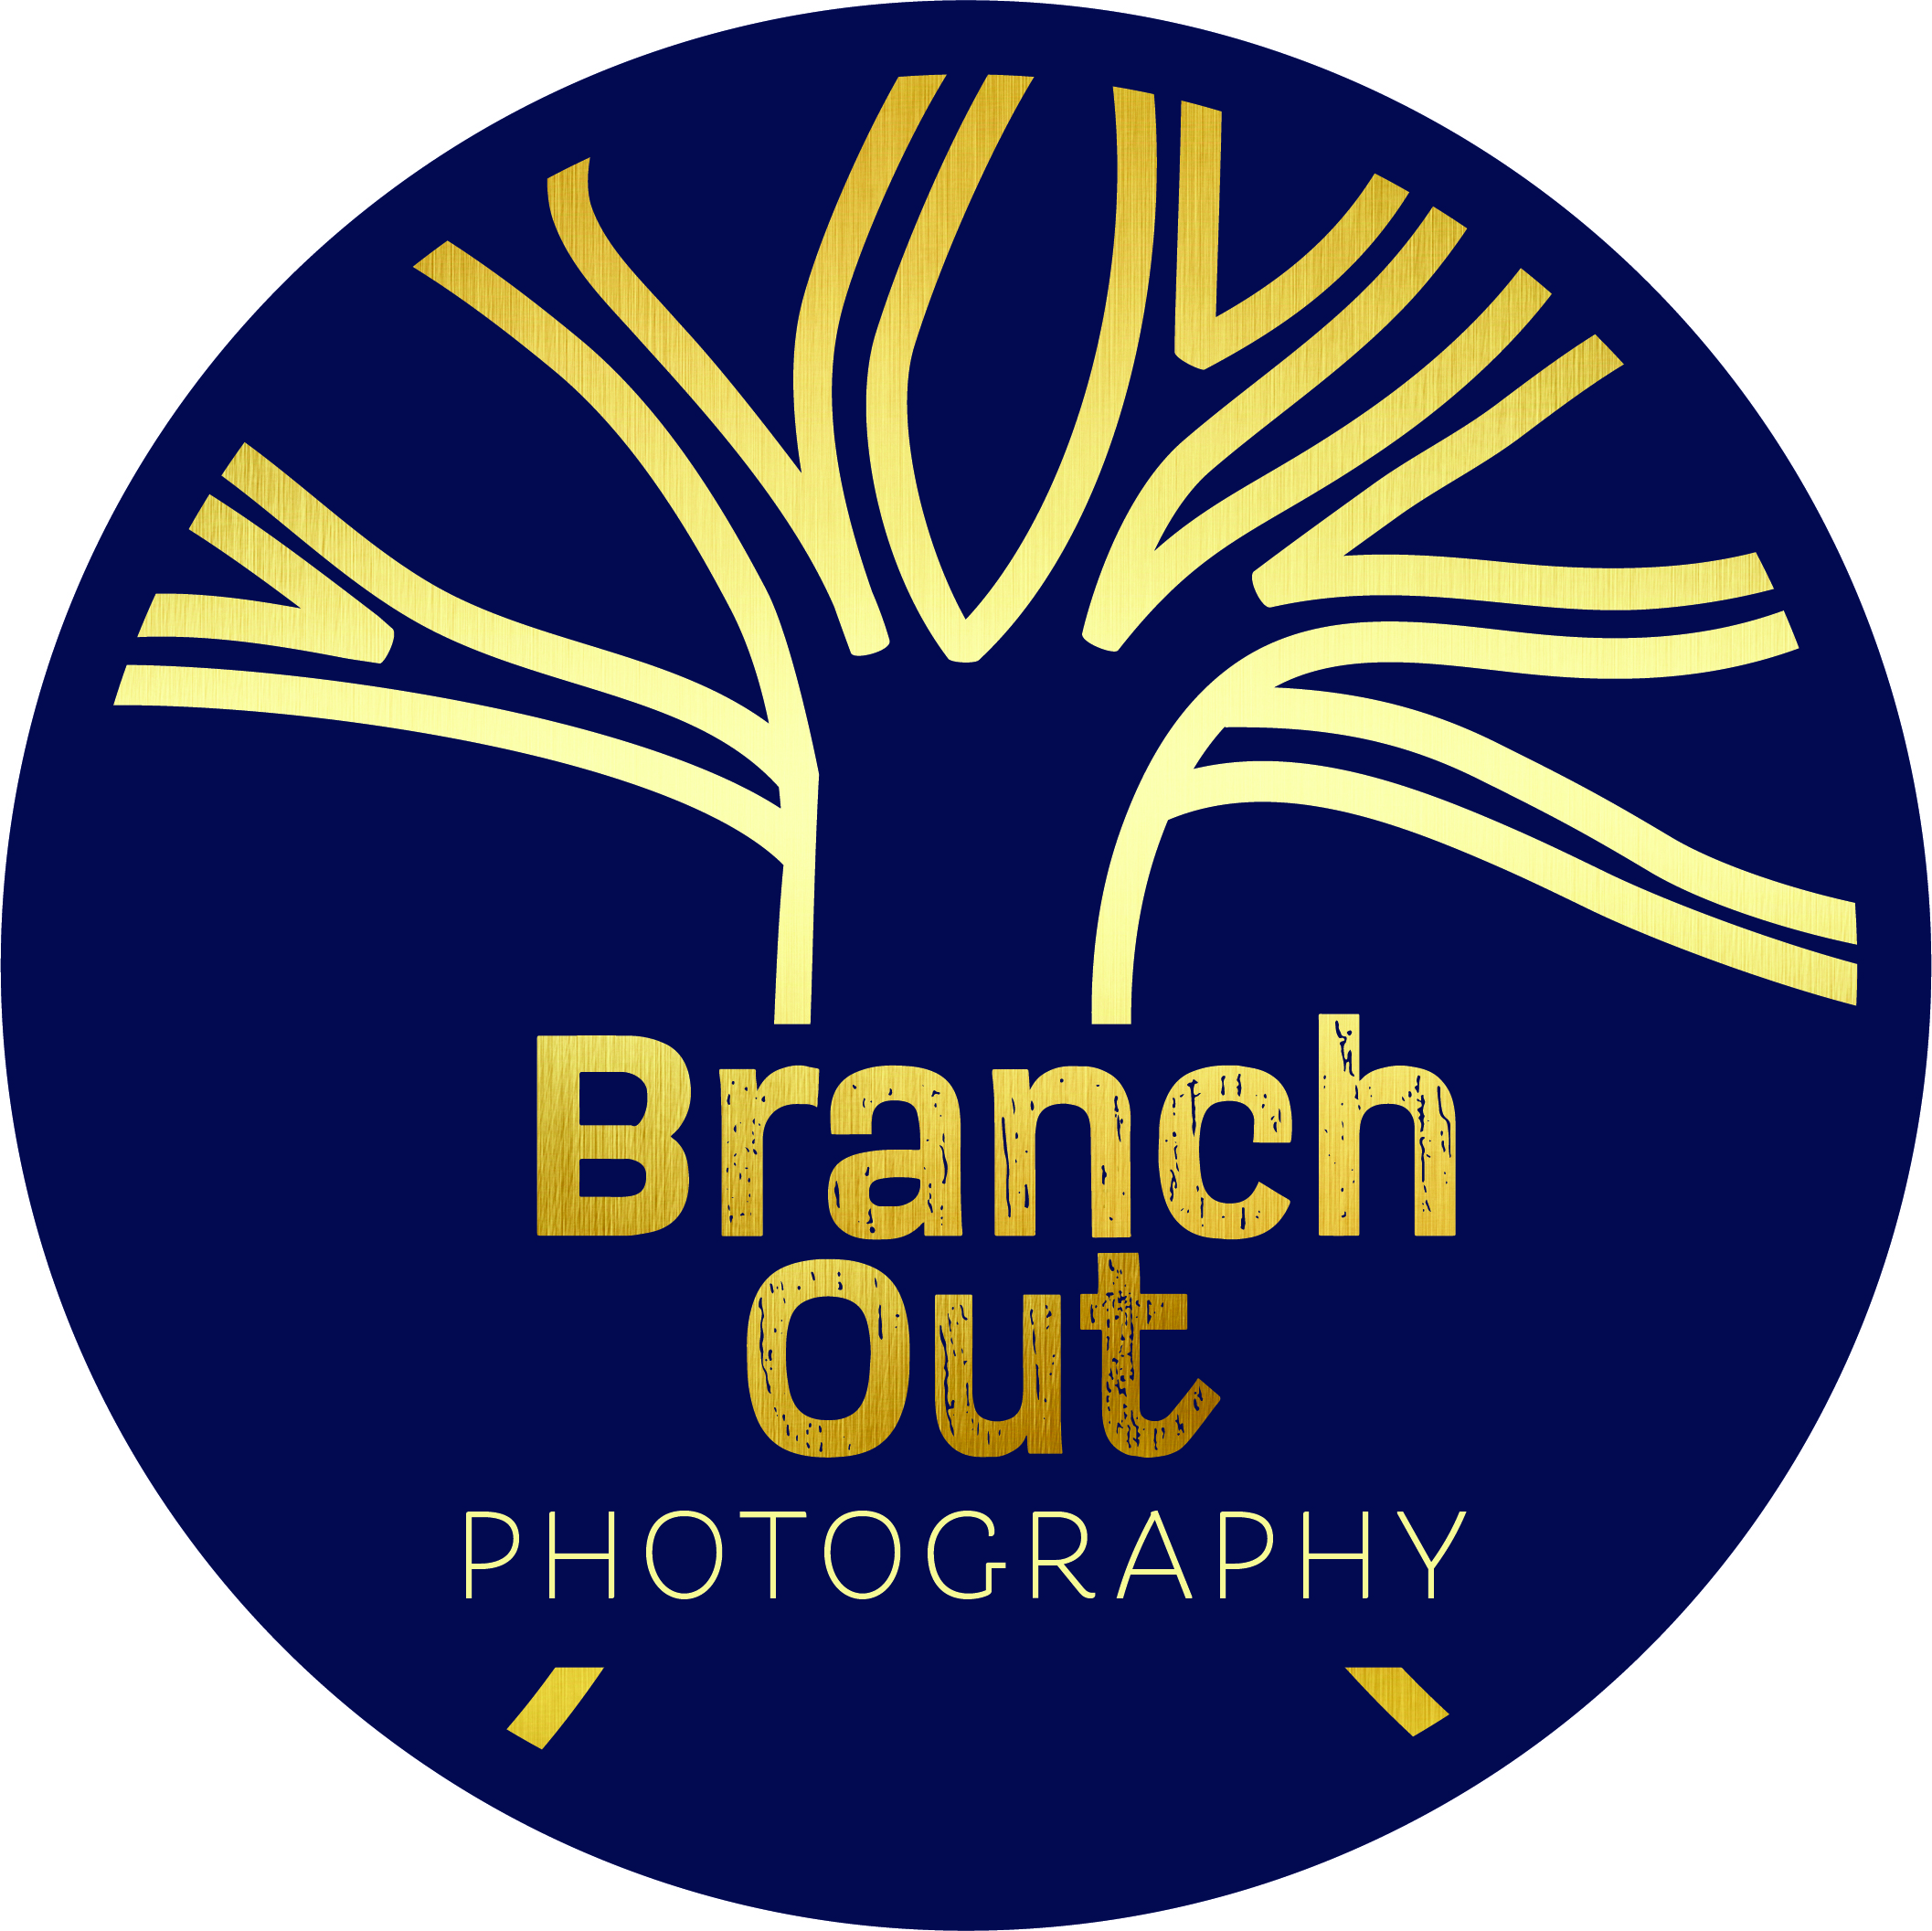 More info on Branch Out Photography